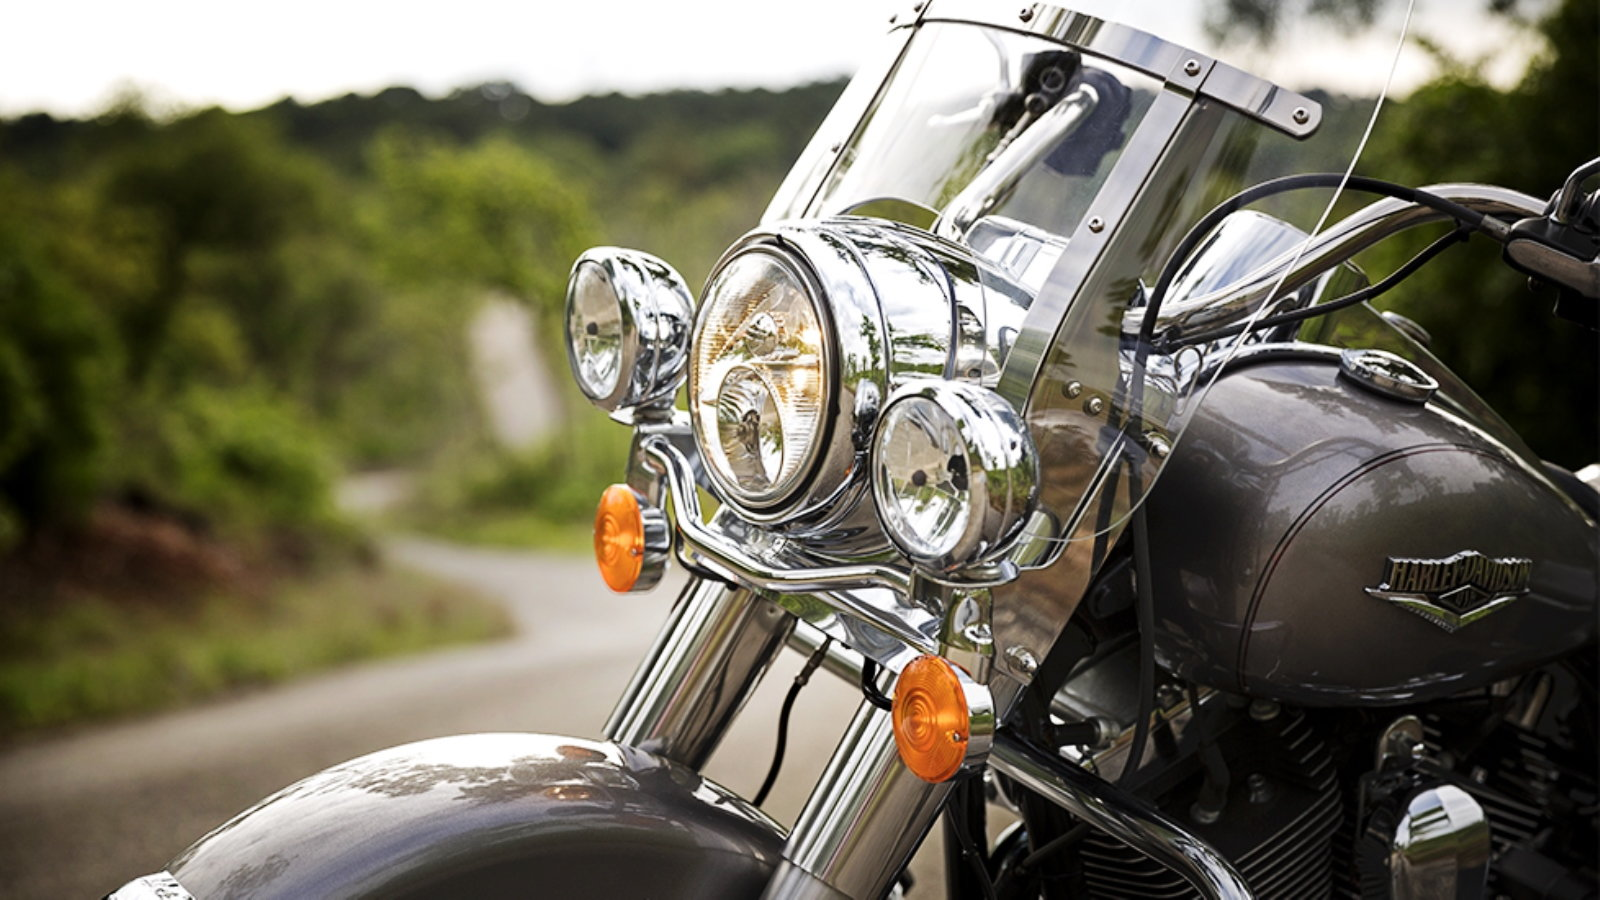 Harley Davidson Touring  How To Replace Running Light Bulbs